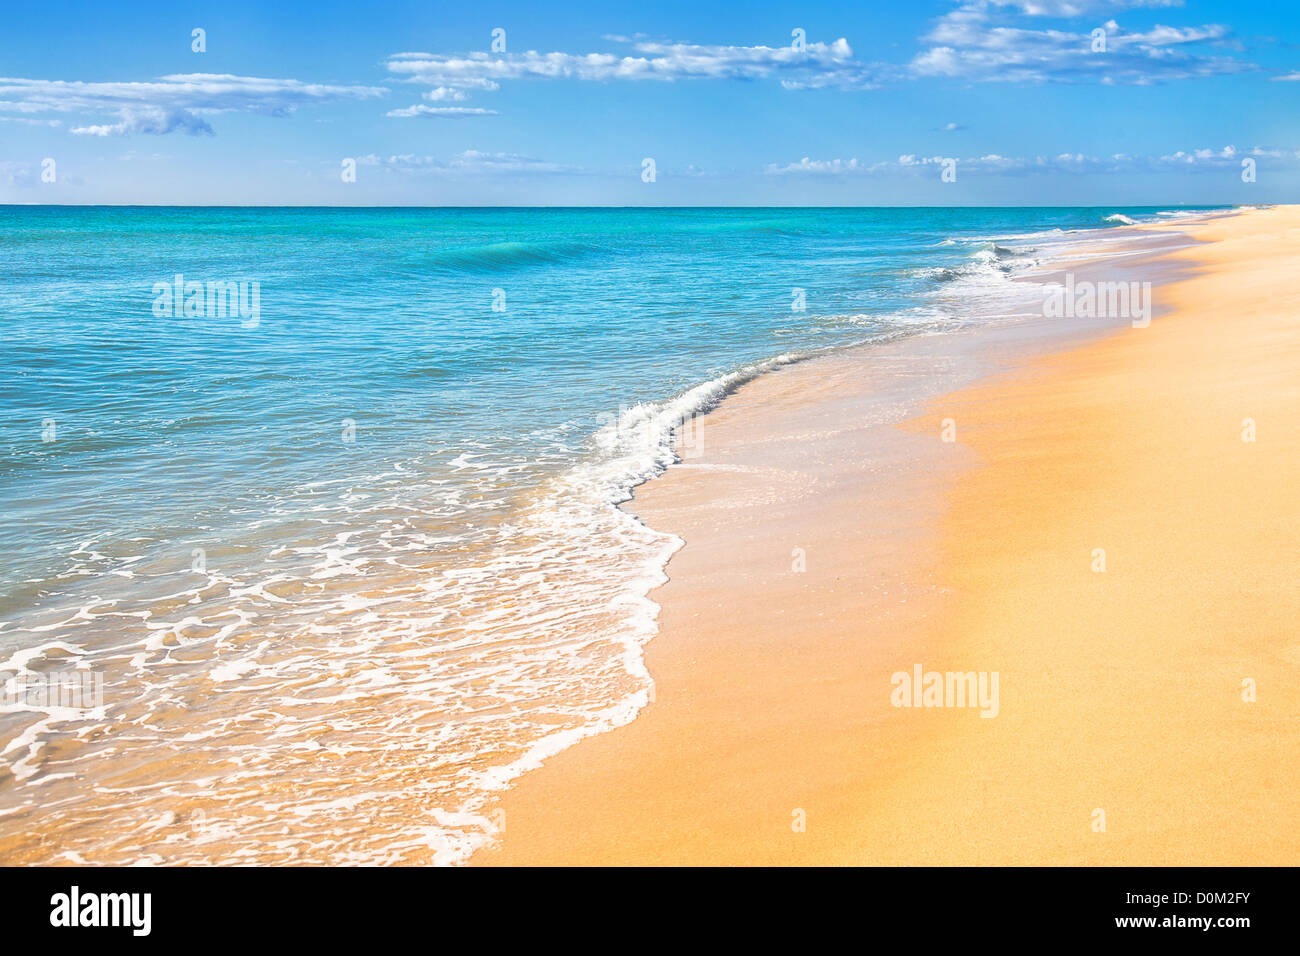 Sand beach with surf water background - Stock Image